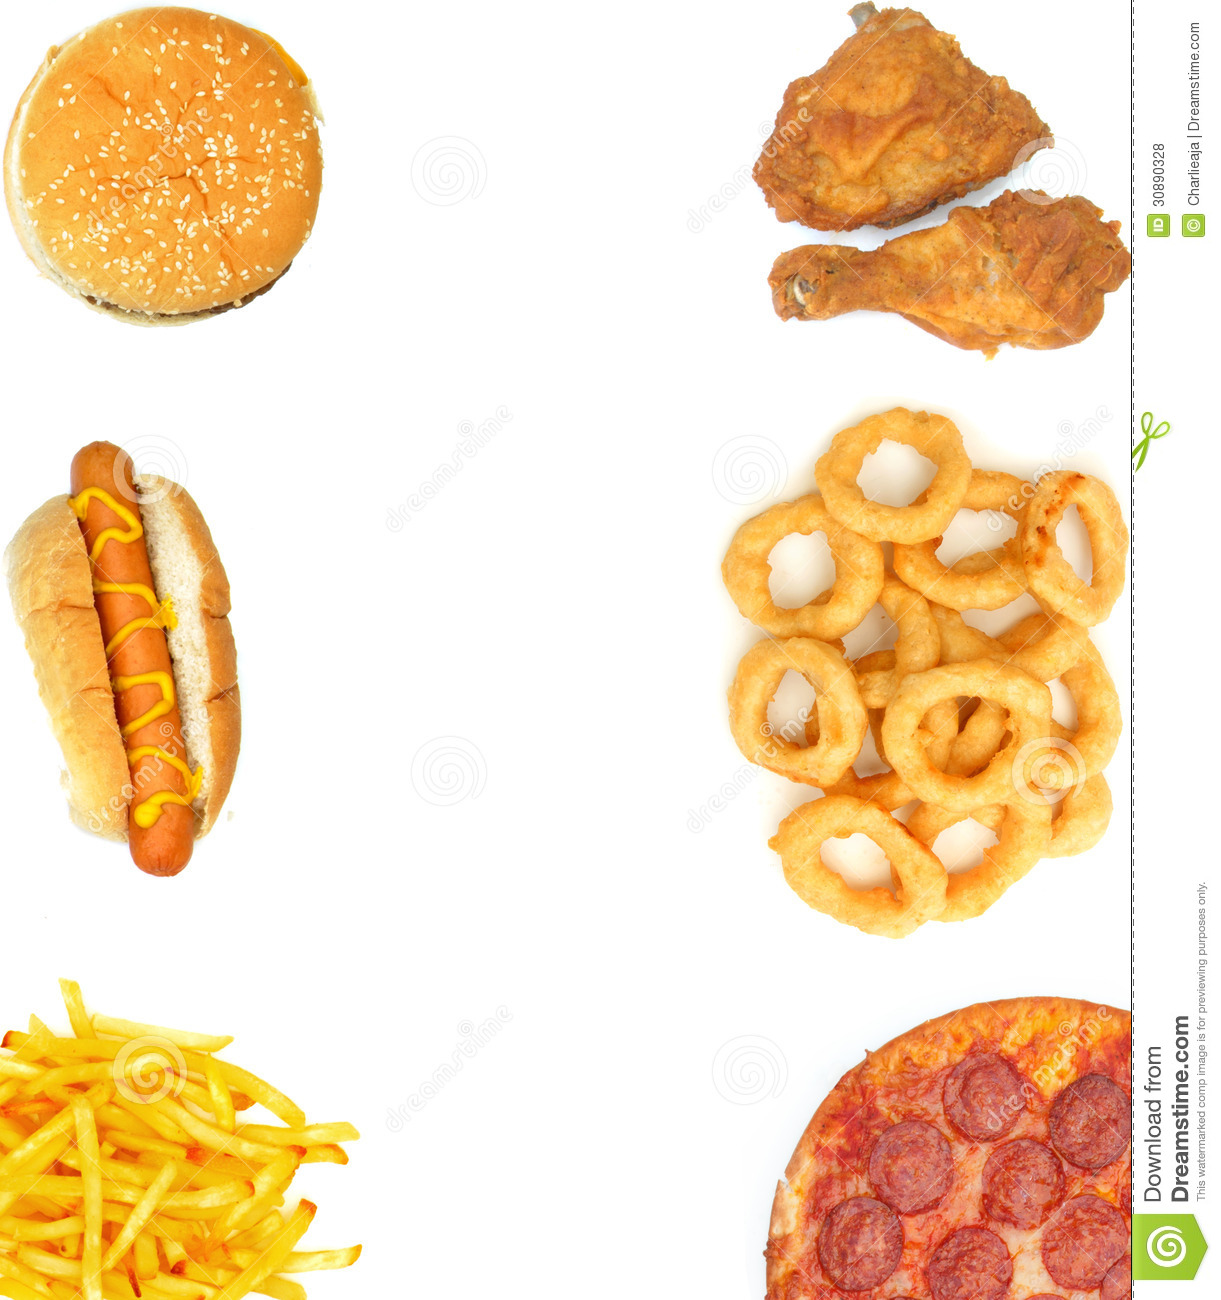 Fast Food Menu Borders